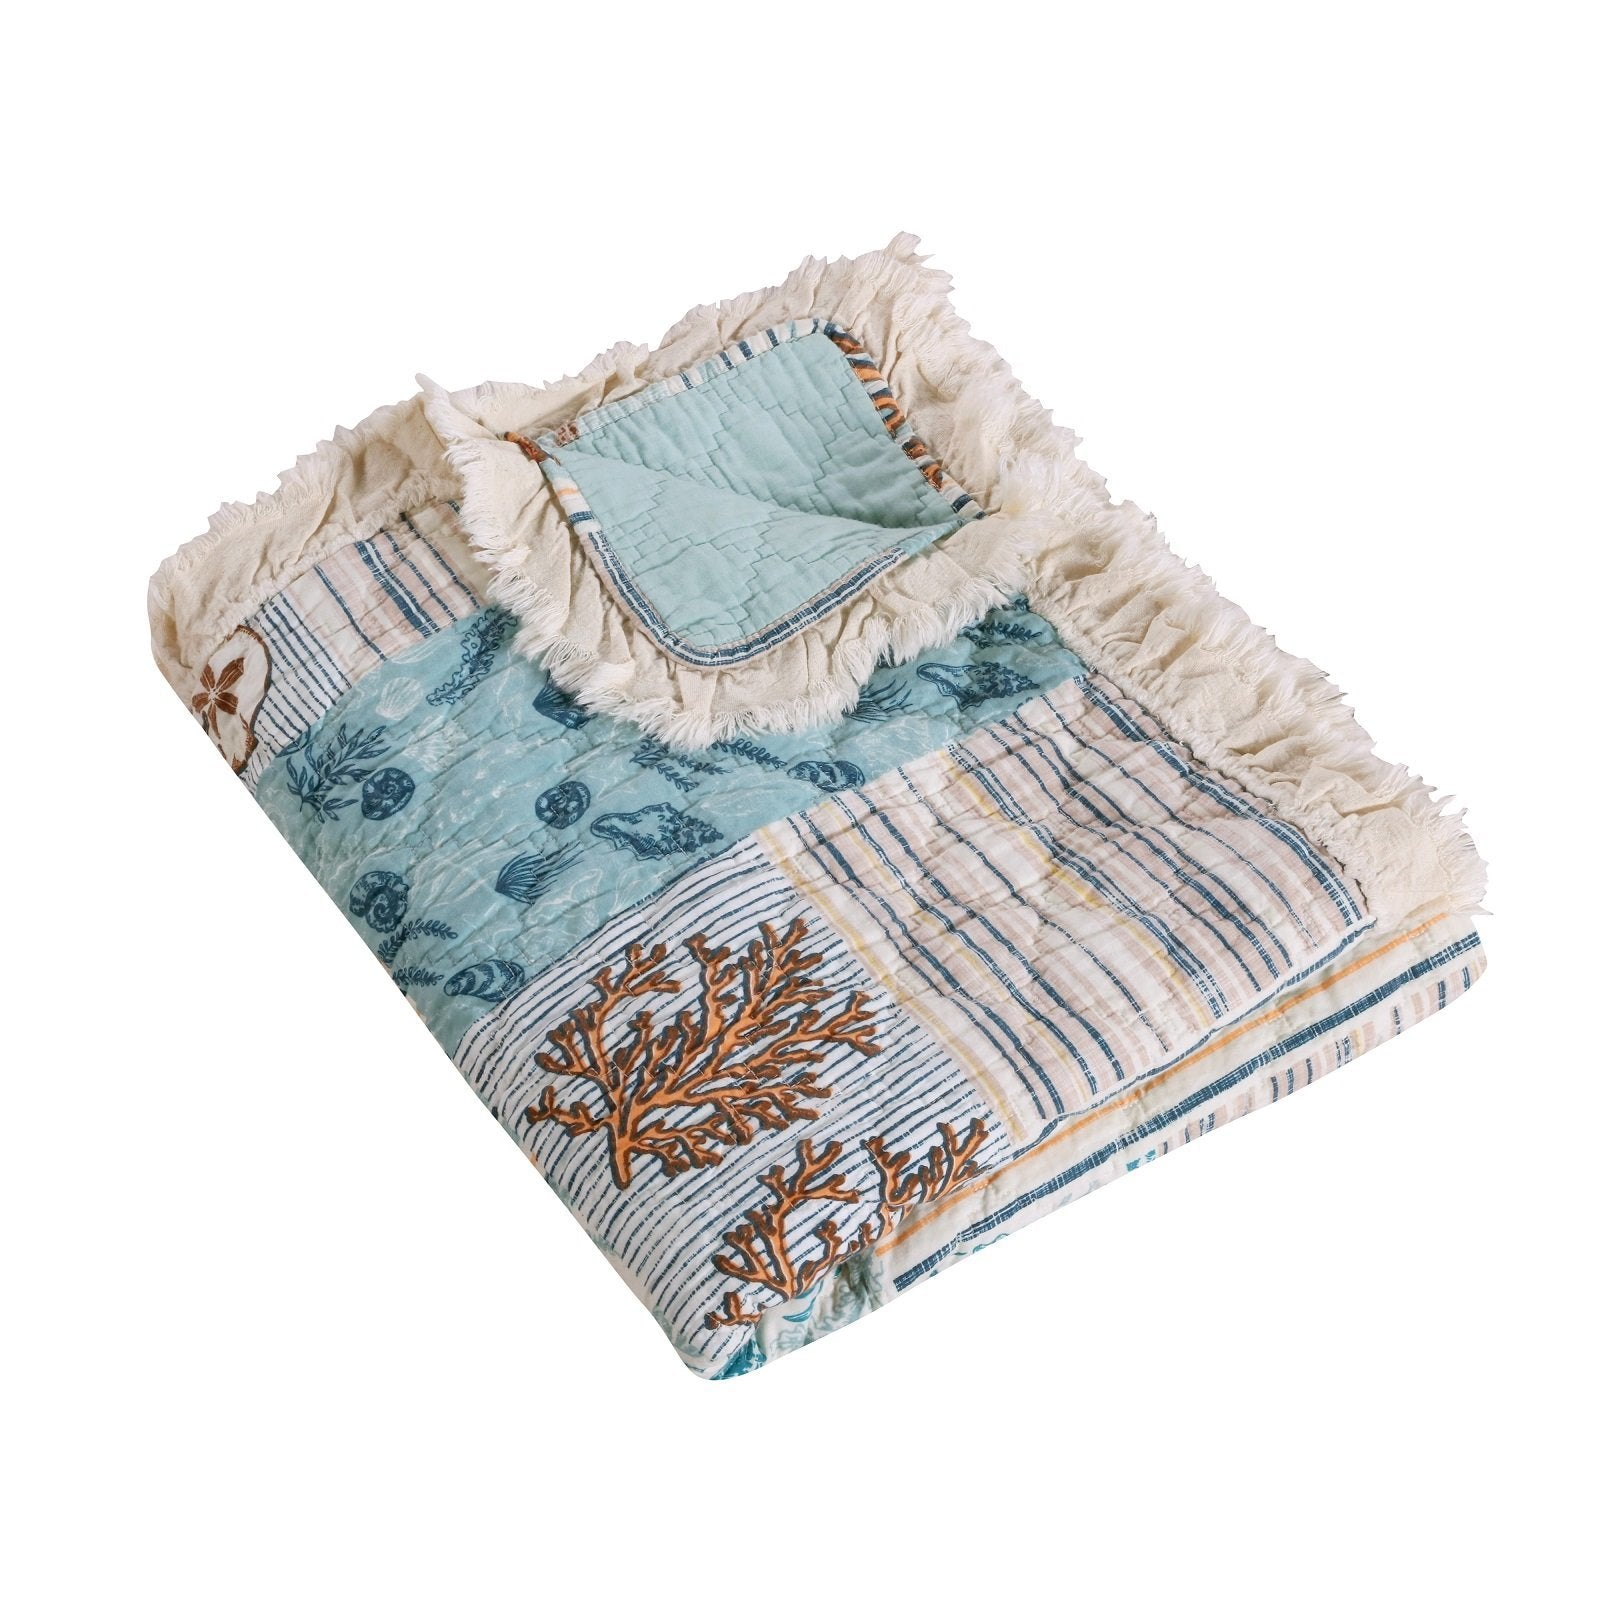 Key West Seafoam Throw Throws By Greenland Home Fashions